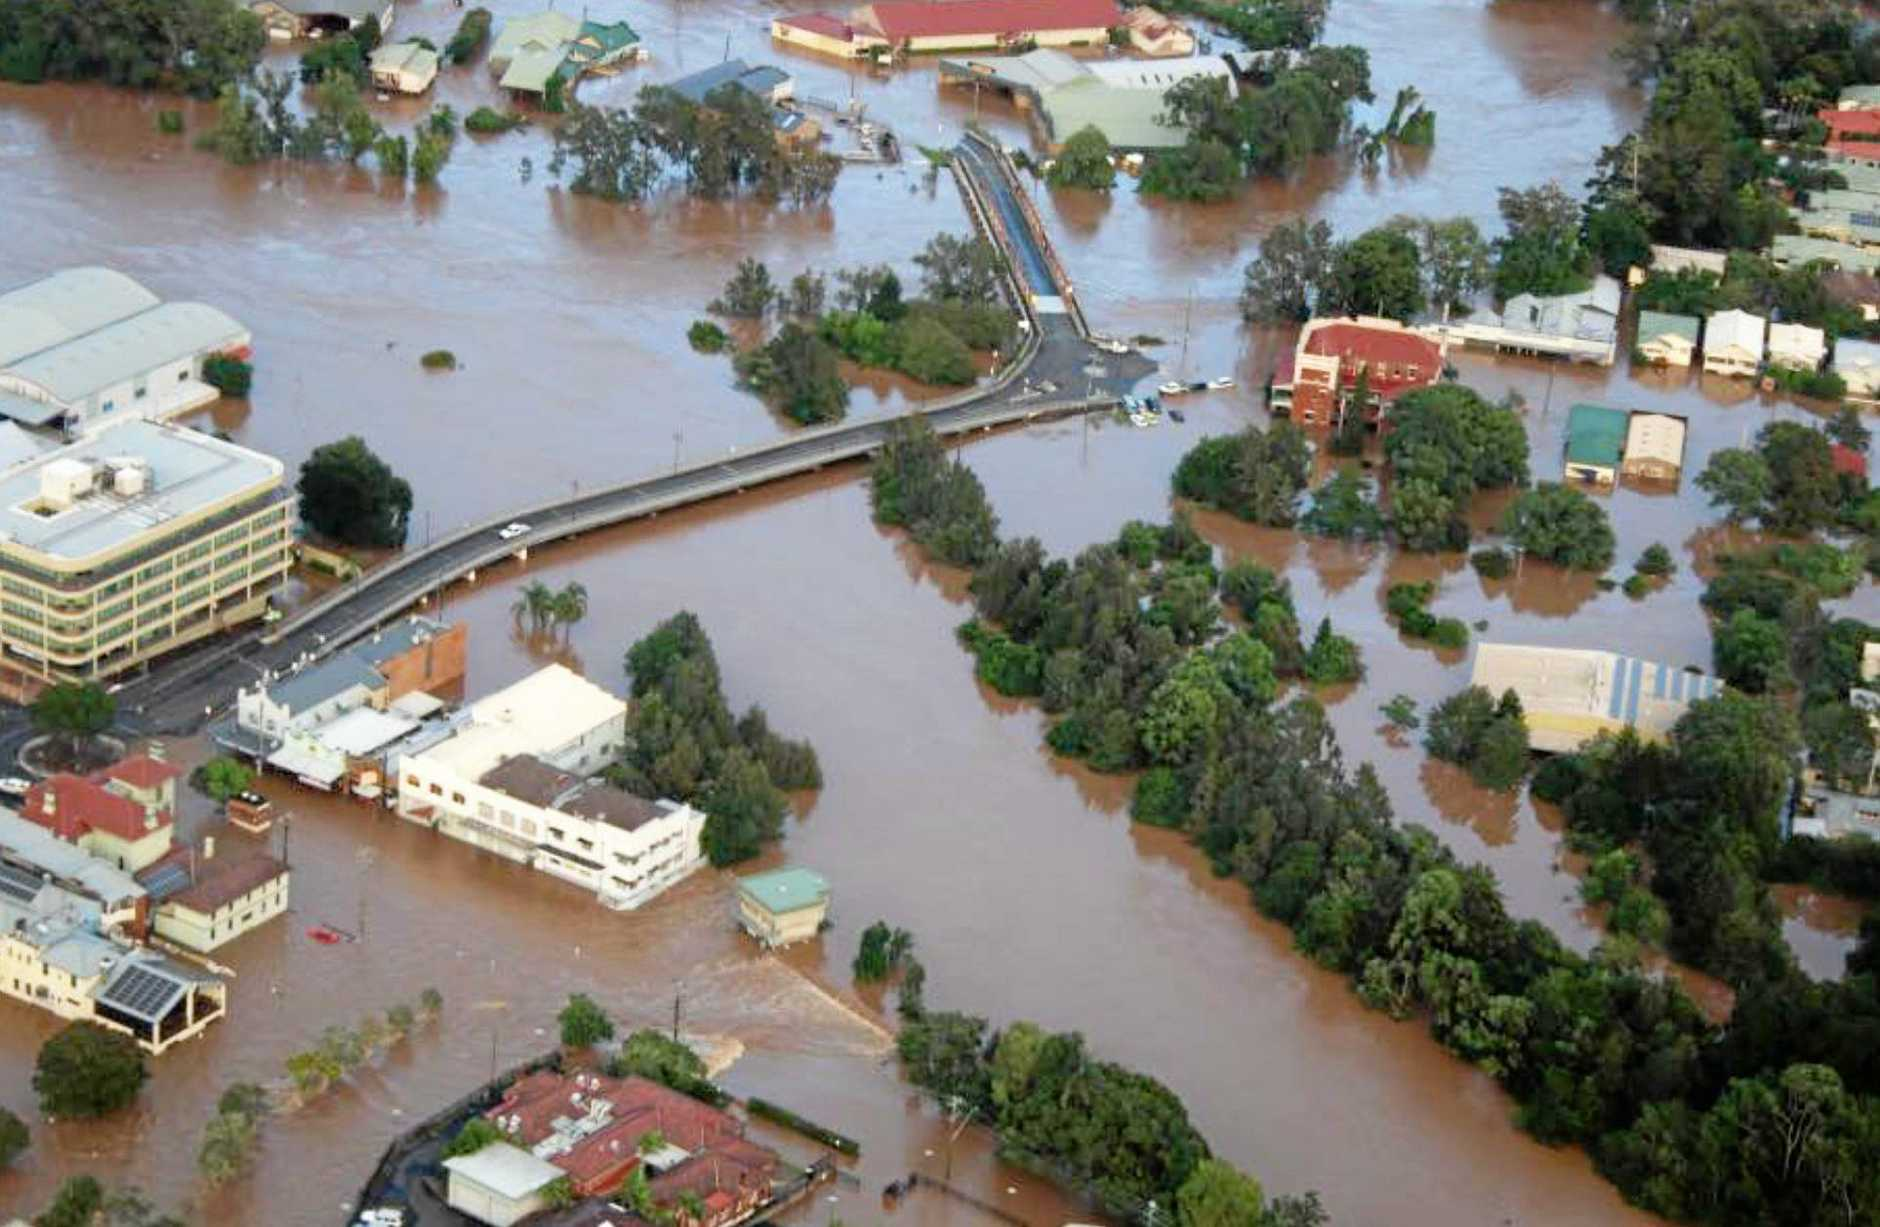 After Cyclone Debbie, regions including Mackay in Central Queensland and Lismore in northern New South Wales (pictured) will be worst affected by these latest storms.